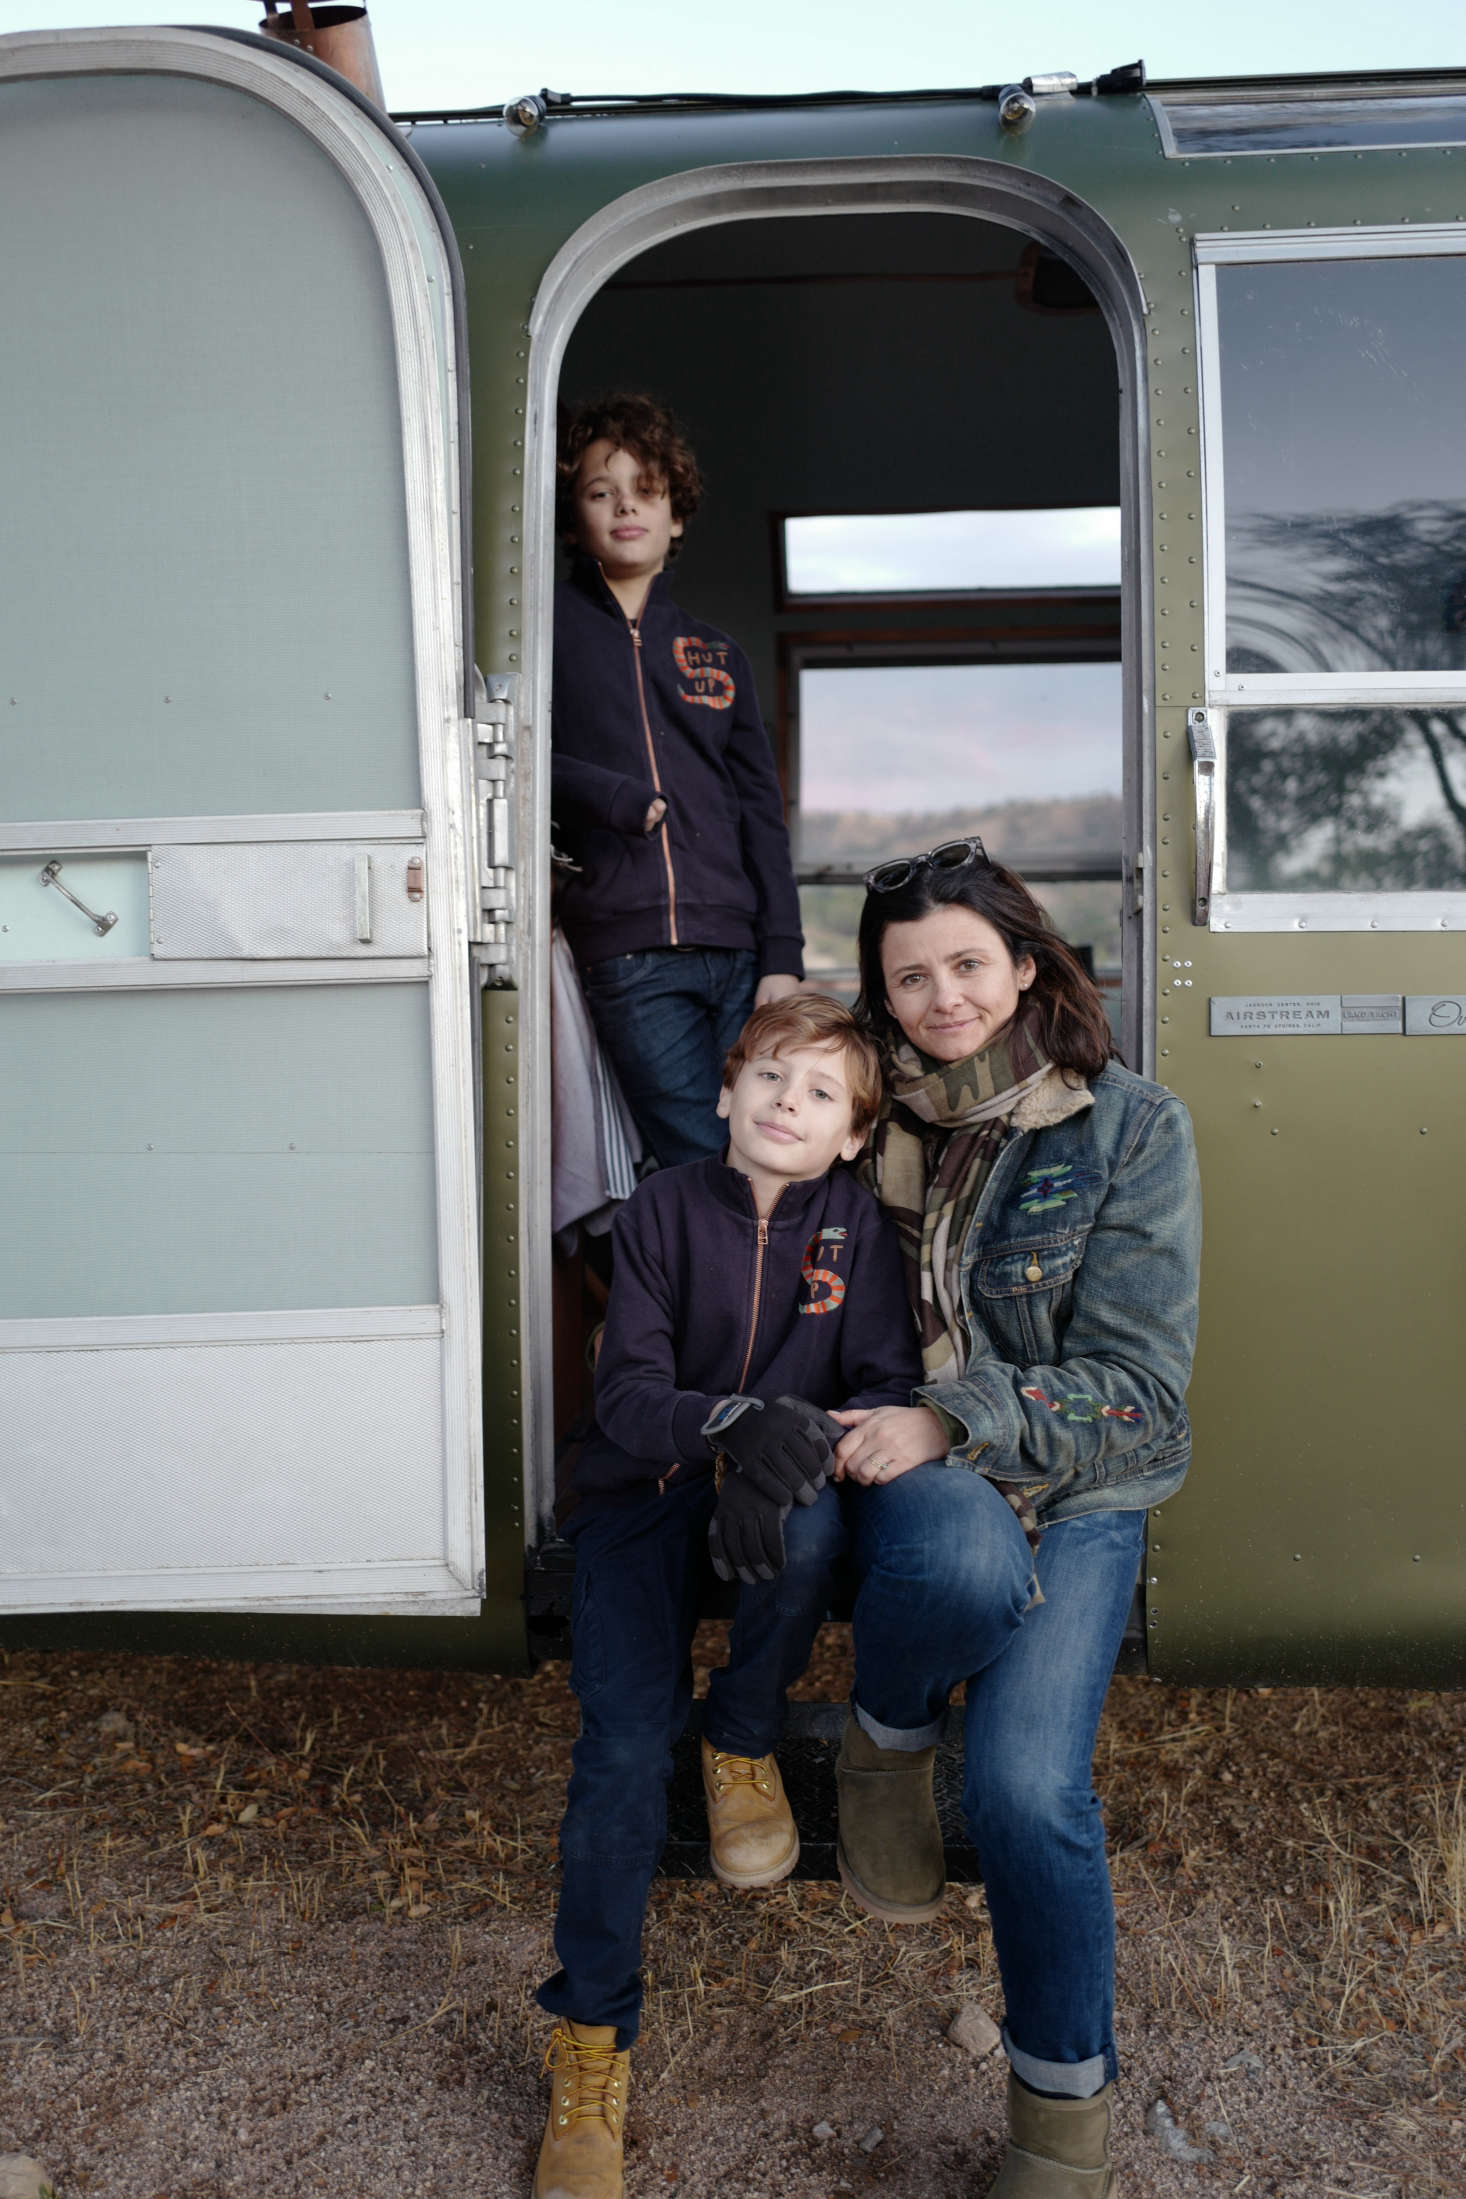 """Anne-Marie and sons at the trailer's entry with its original screen door. Jorge loves old airplanes and notes that """"the rounded door has that kind of feel."""""""